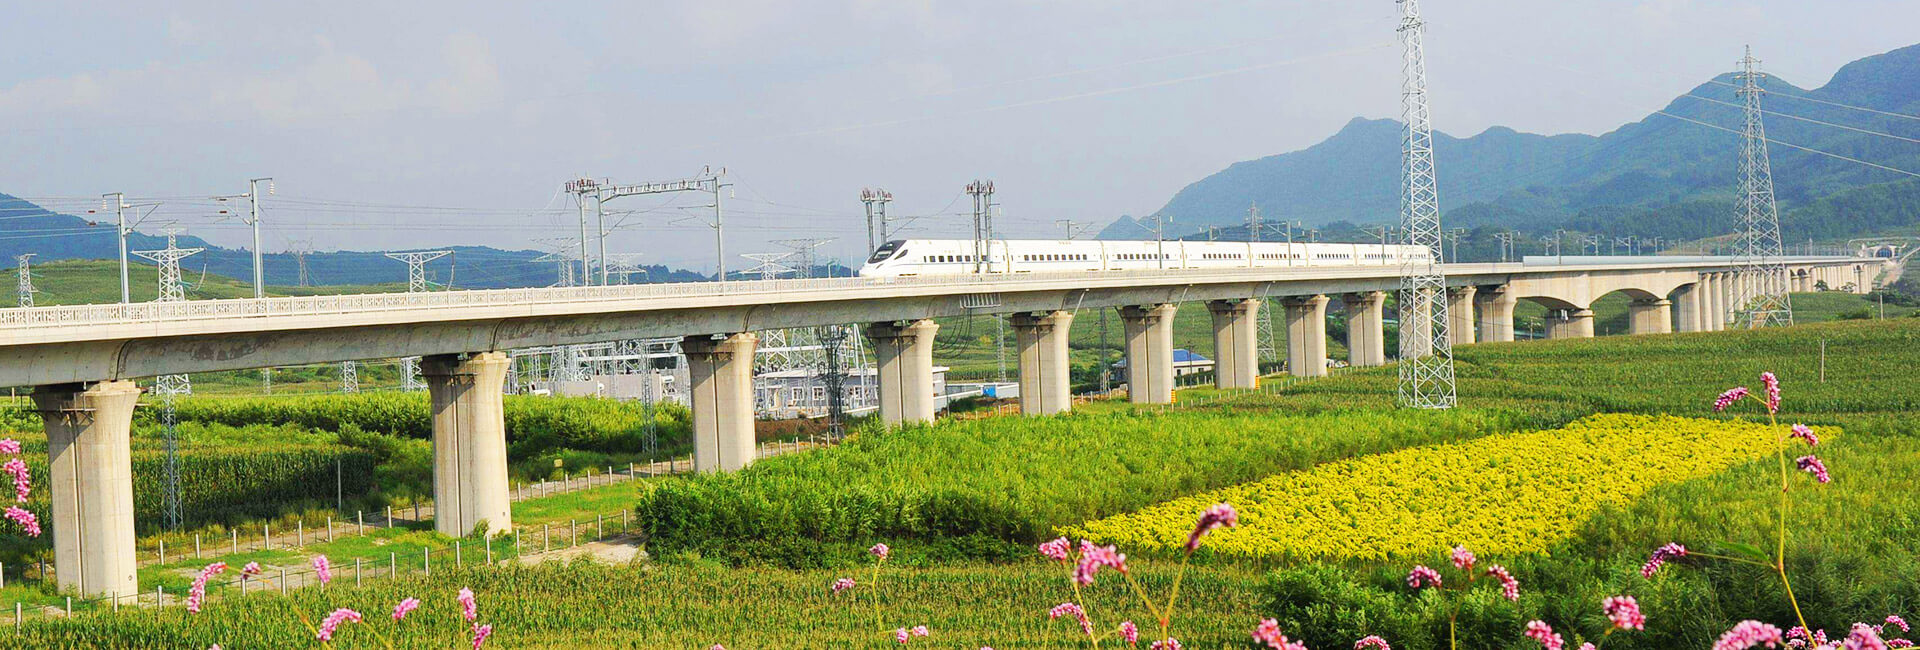 China High Speed Train Types